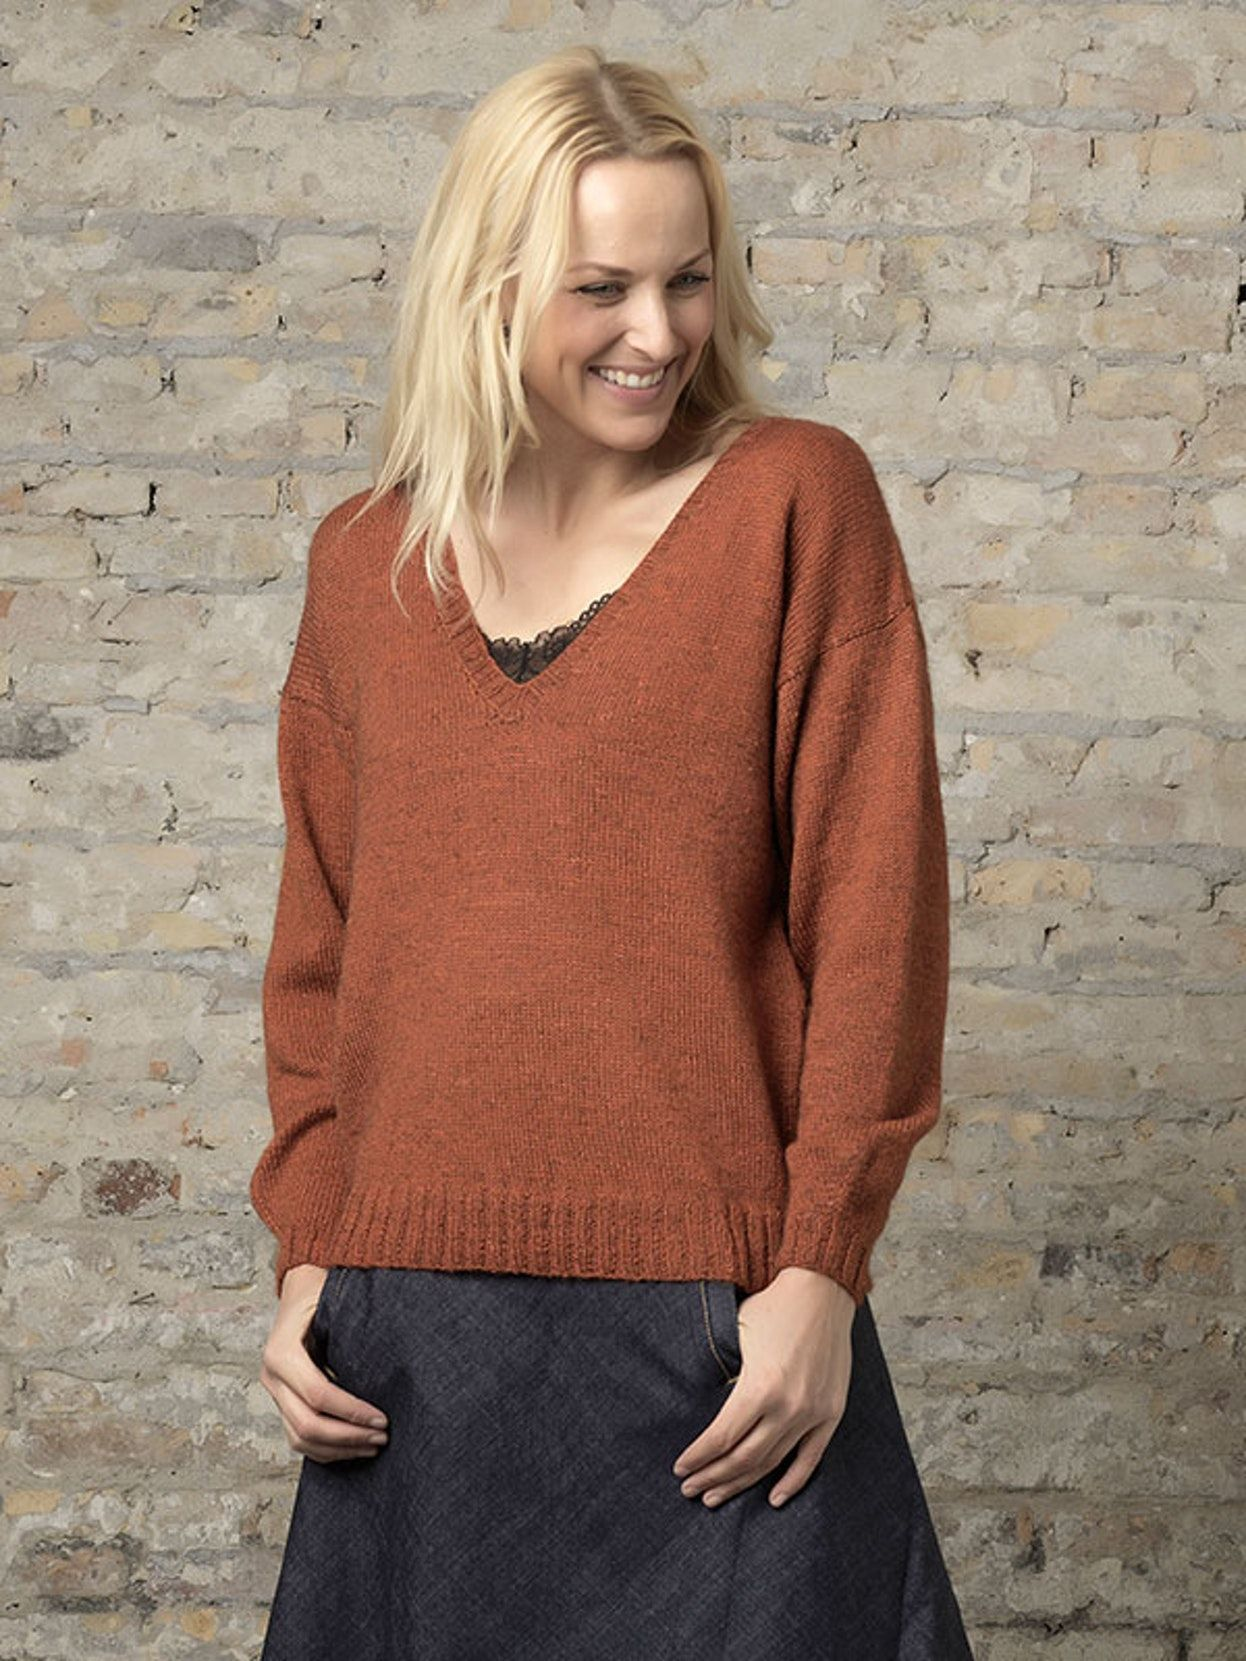 Strikkeopskrift: Sweater med V-hals | Familie Journal #strikkeopskriftsweater